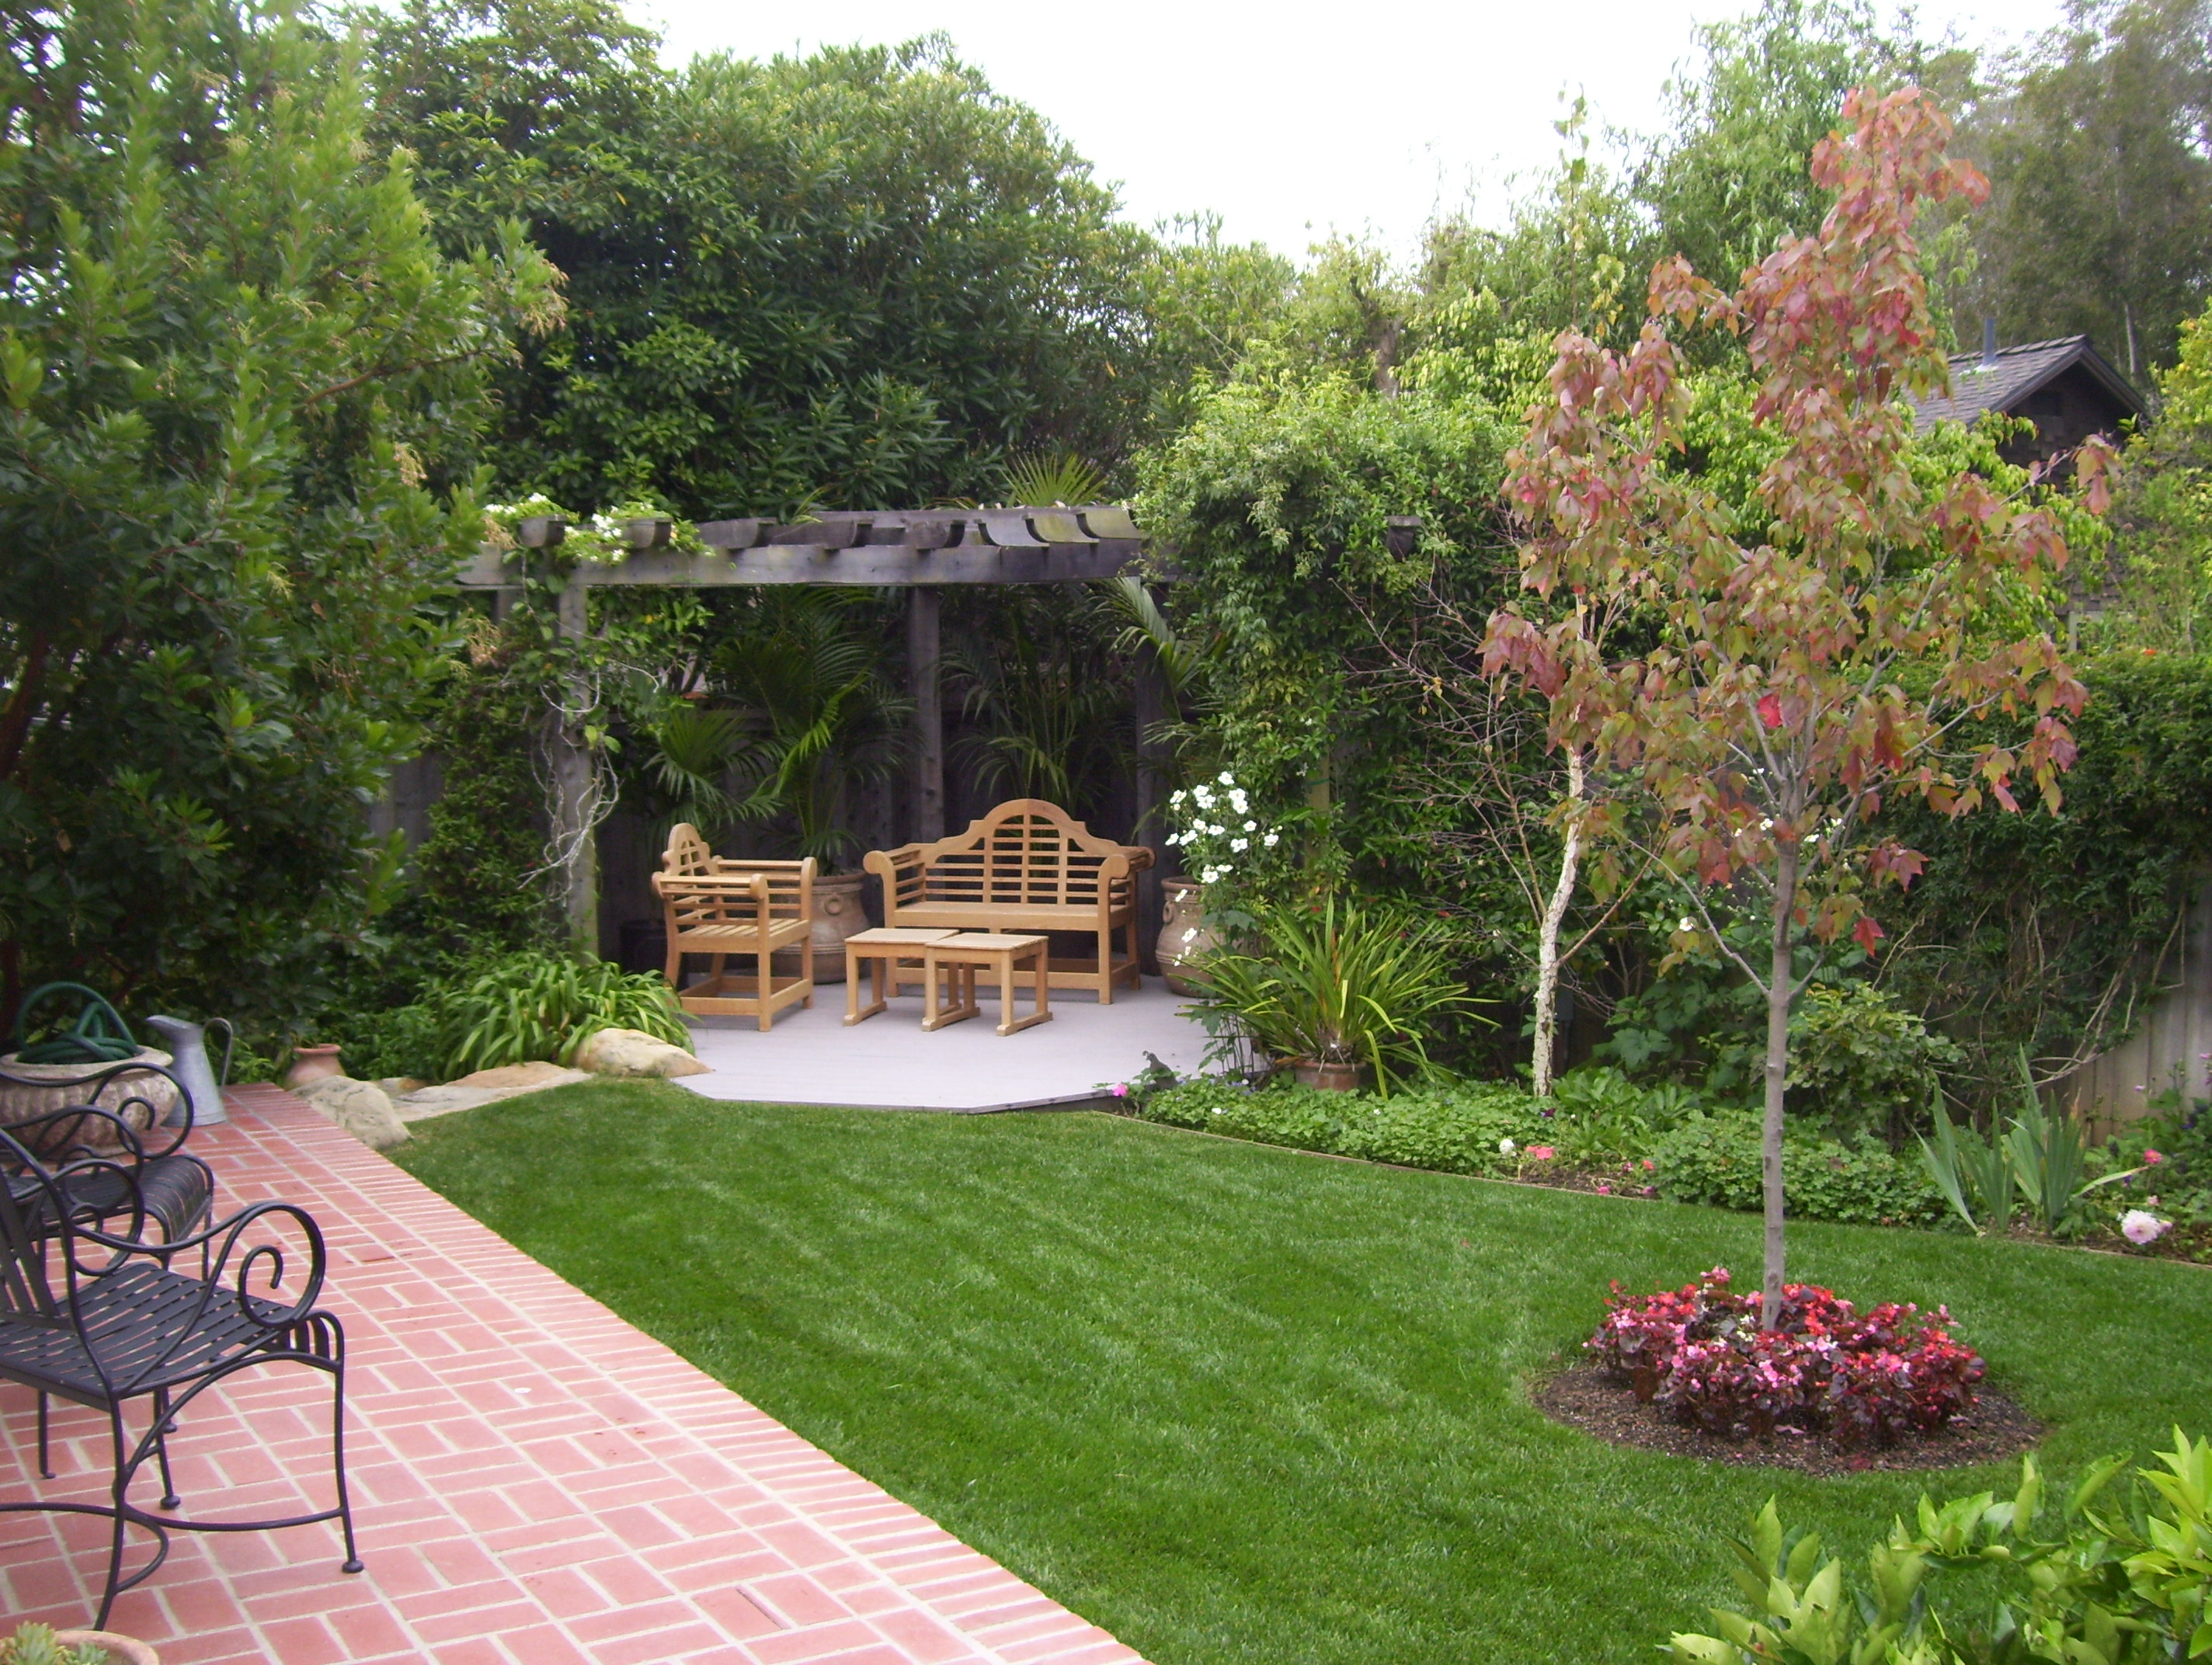 Backyard landscaping ideas santa barbara down to earth for Outside landscape design